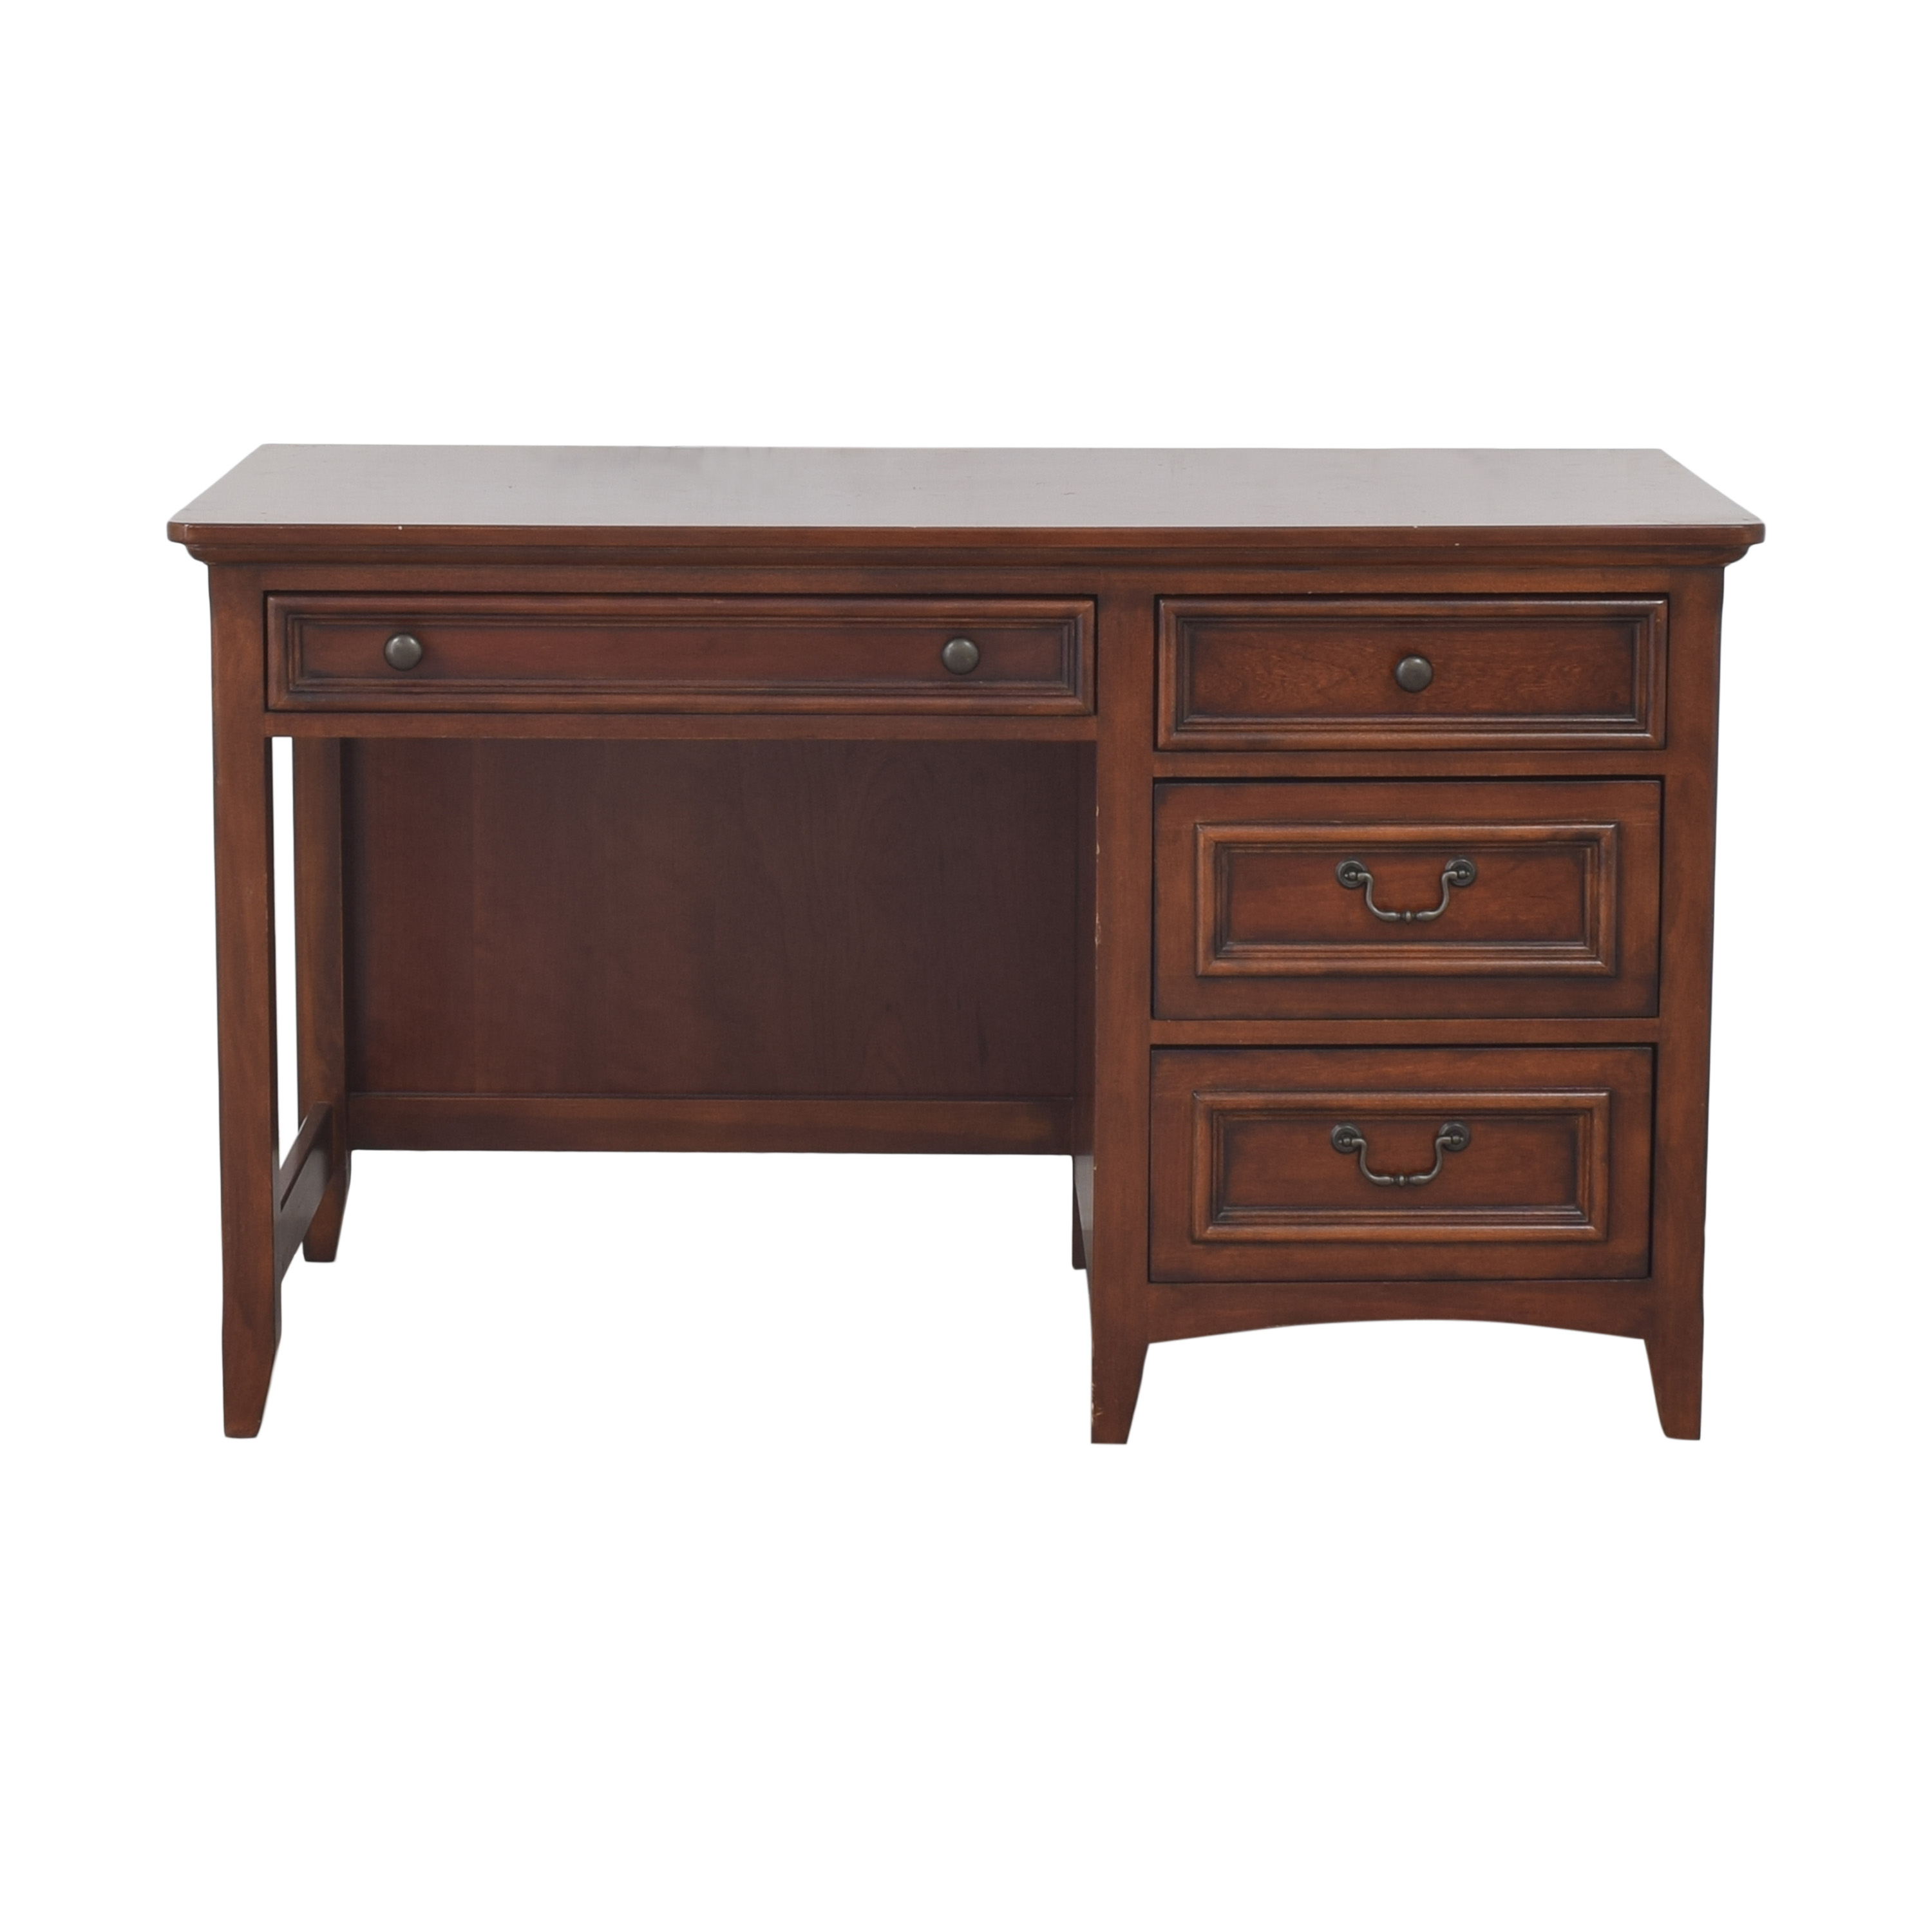 Broyhill Furniture Broyhill Writing Desk for sale